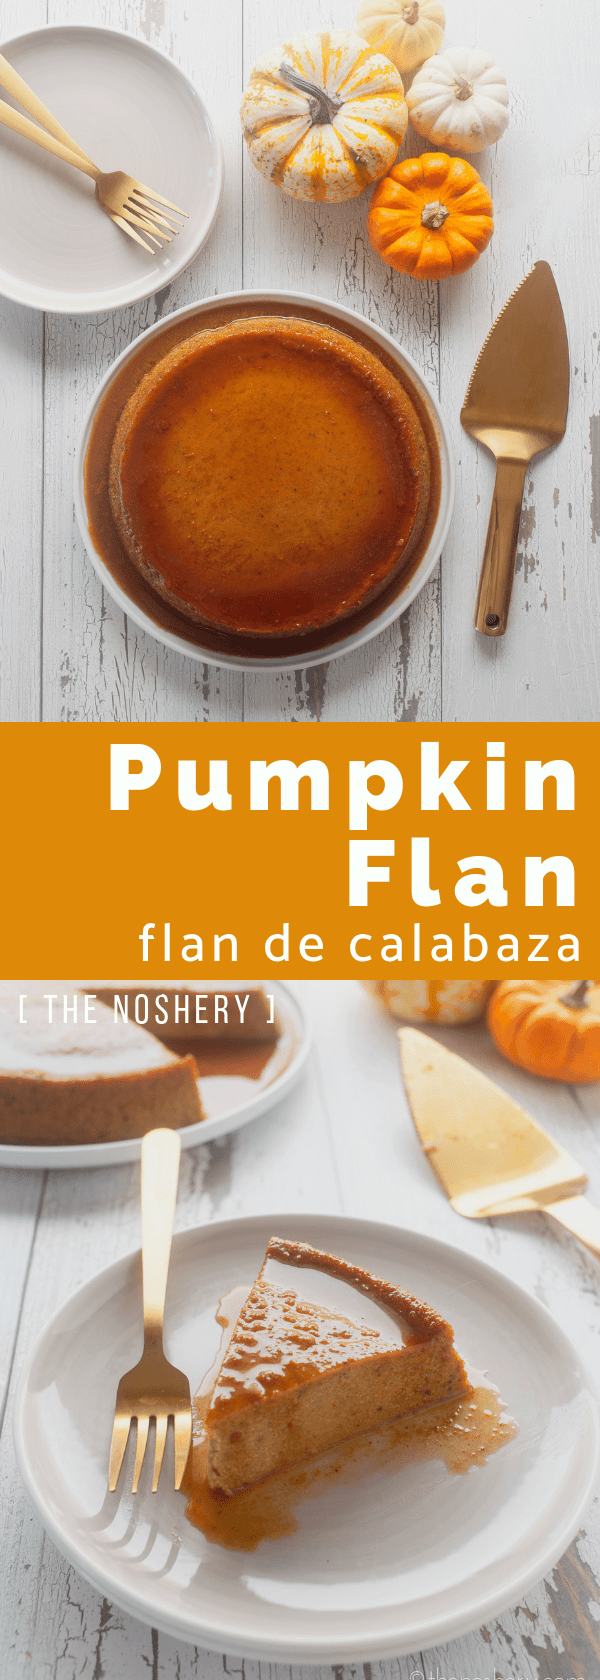 Pumpkin Flan | Pumpkin pie step aside. Everthing that you love about flan, pumpkin, and pumpkin spice are combined to make this amazing dessert. | The Noshery